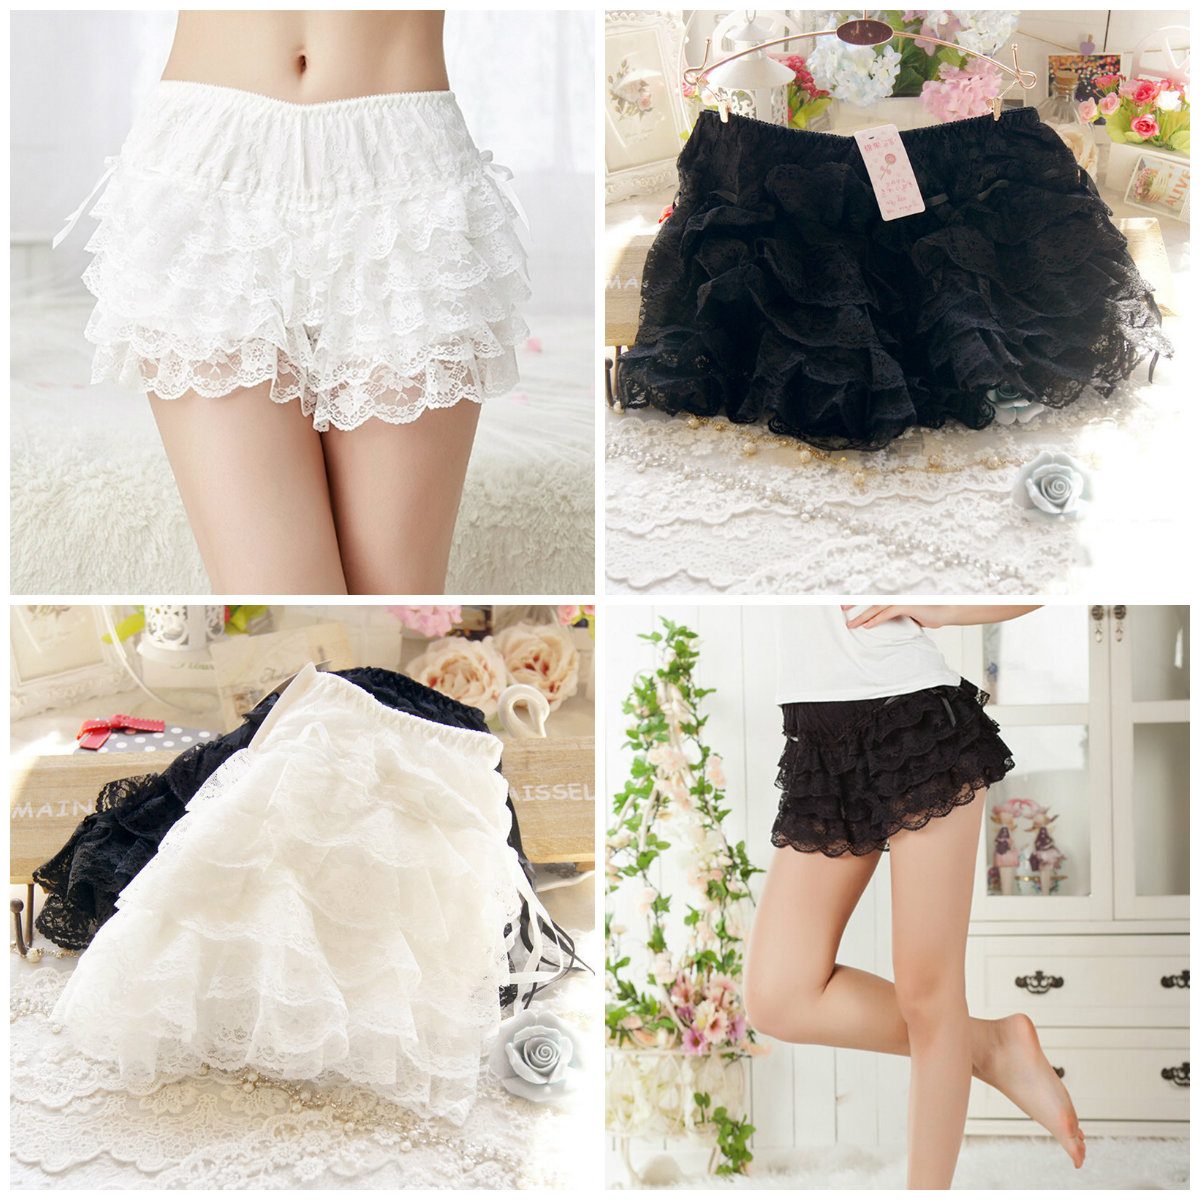 Japanese Cute Style For Girl Women Sexy Lace Shorts Elastic Waist Bottoming Shorts